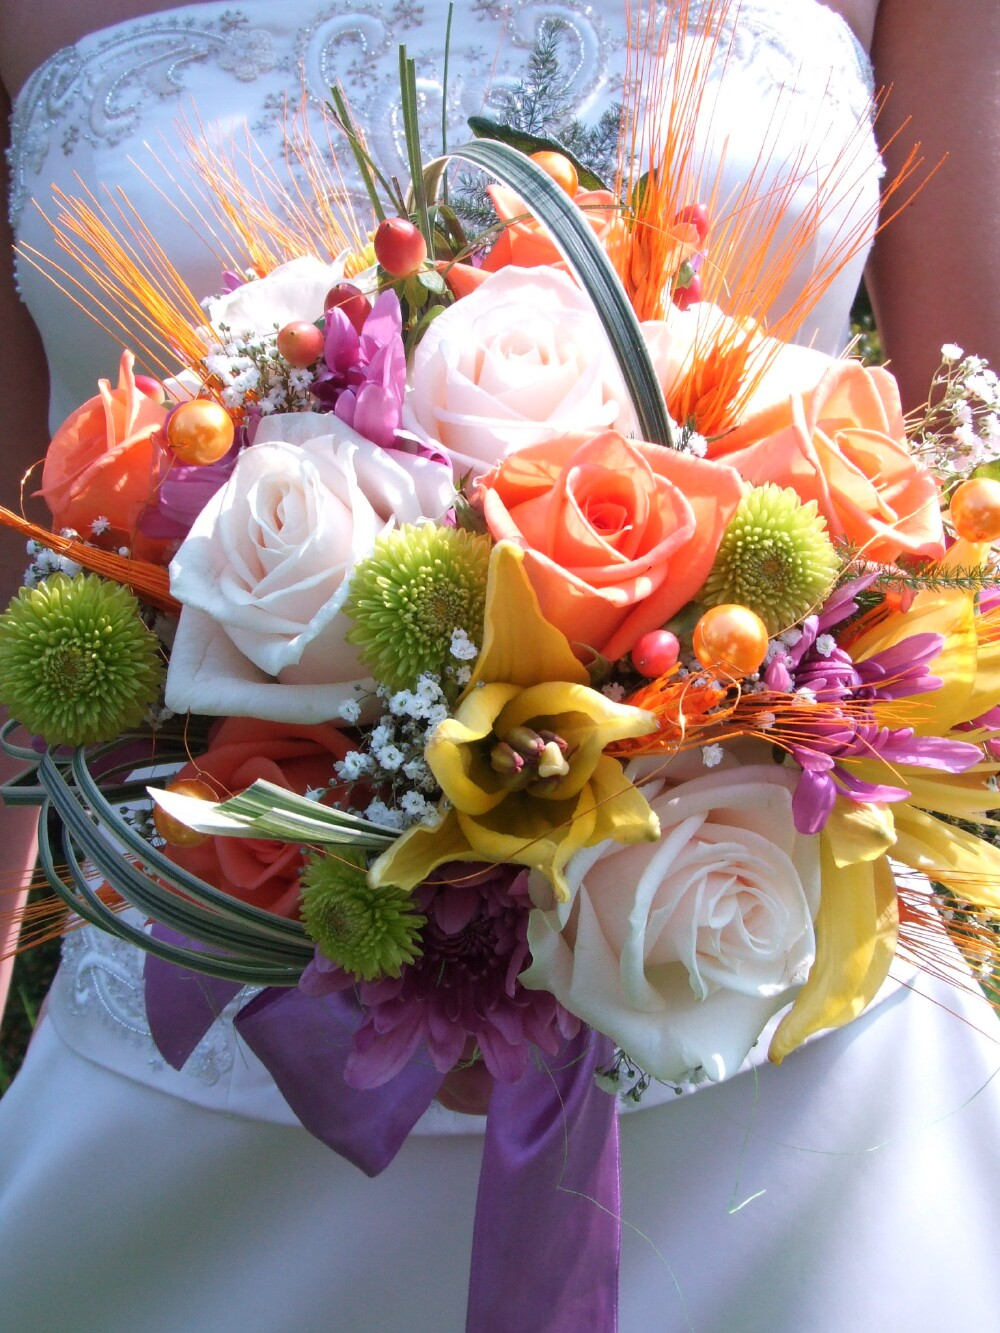 The Best Way Of Selecting A Wedding Florist